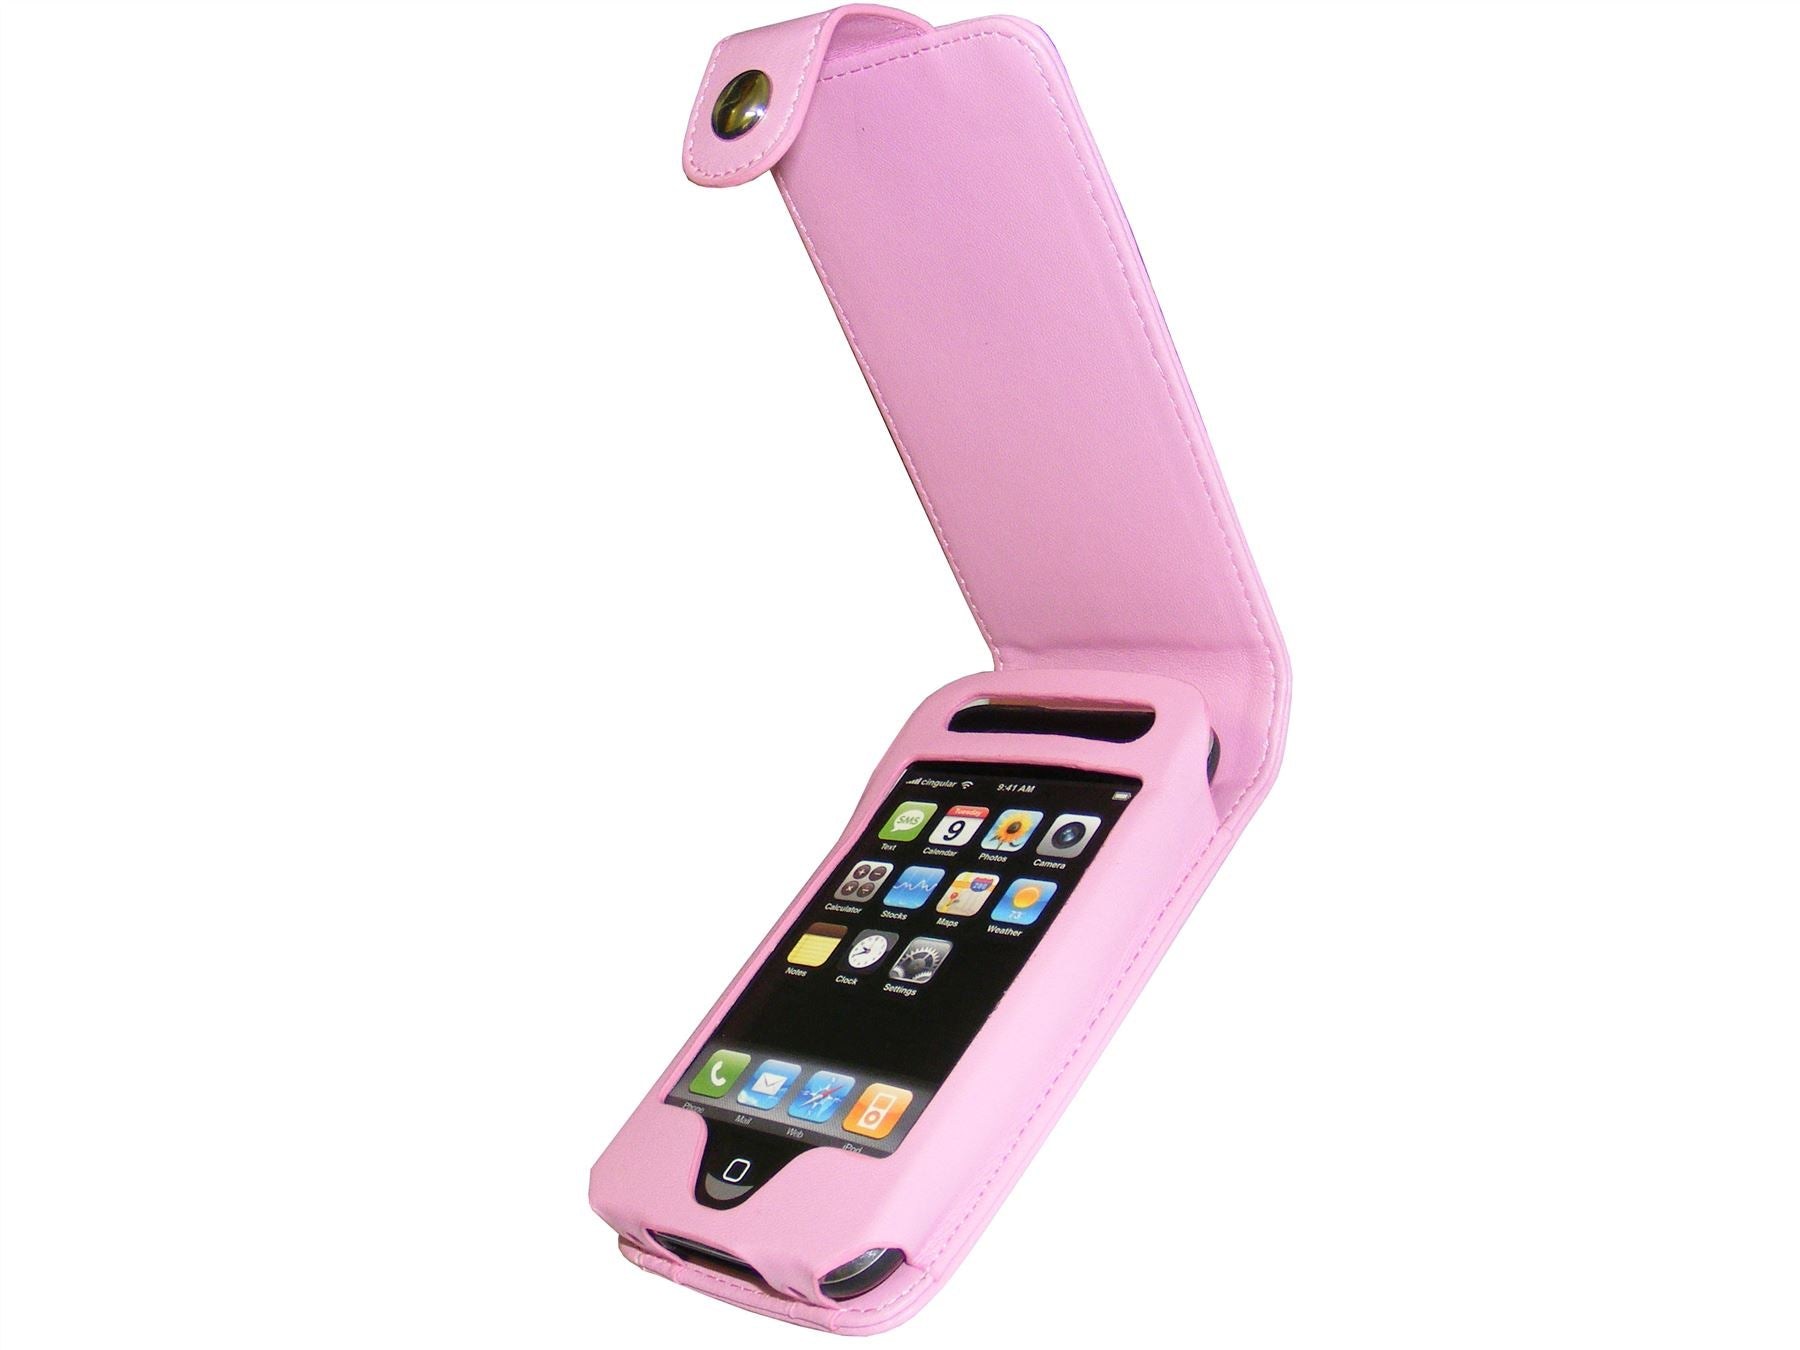 iGadgitz Pink PU Leather Case Cover for Apple iPhone 3G & New 3GS 8gb, 16gb & 32gb + Screen Protector